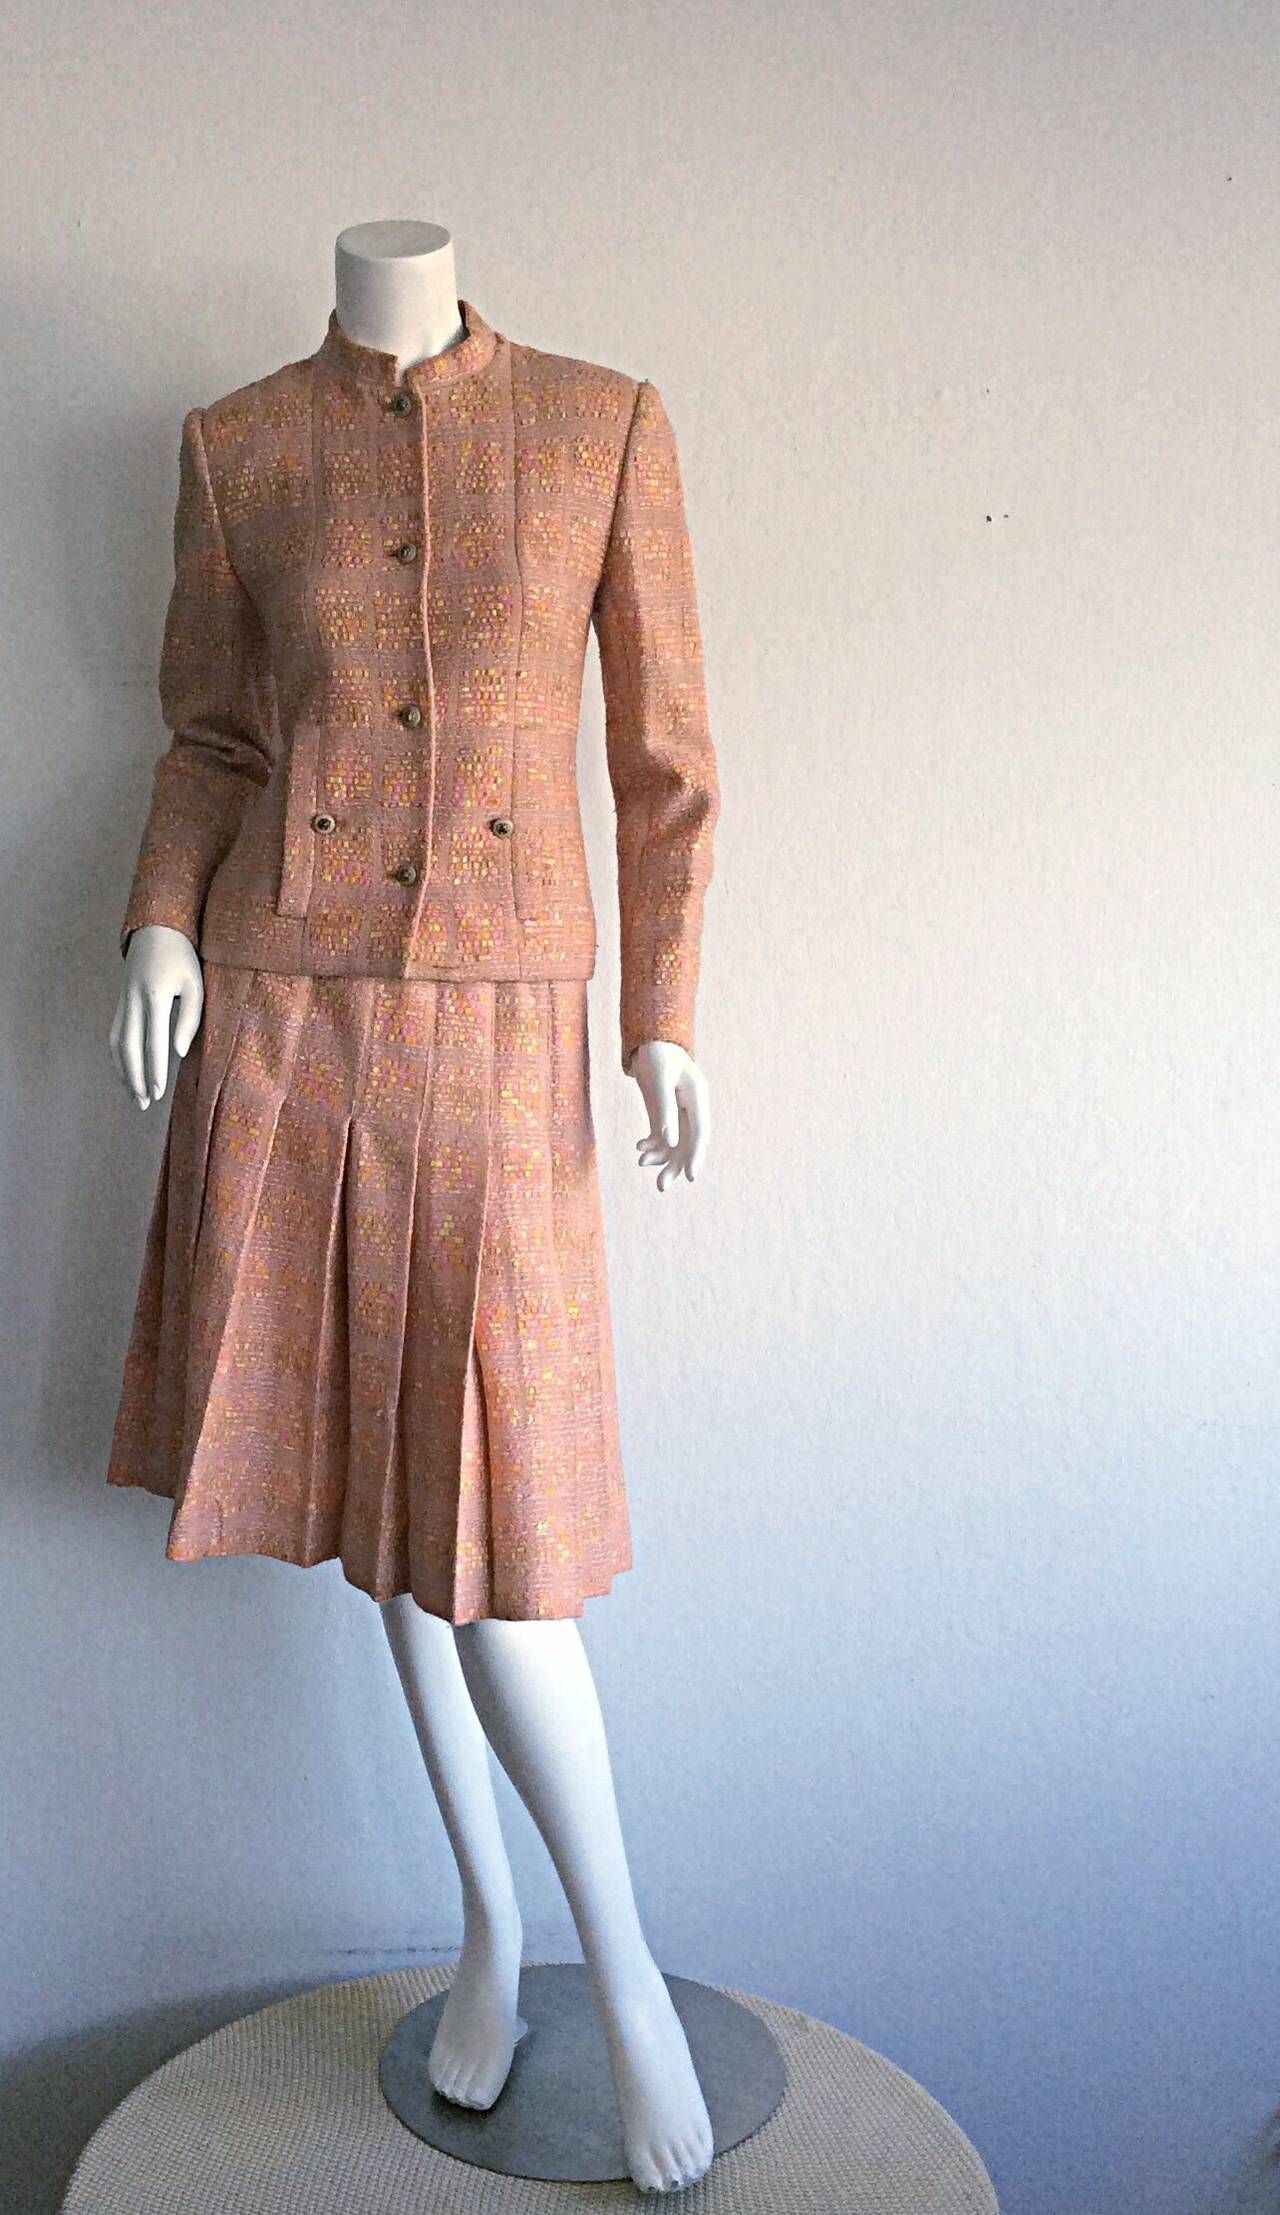 e18506e7289feb Amazing 1960s Vintage Chanel Suit Pink Boucle Jackie O Pillbox Didier Ledot  | From a collection